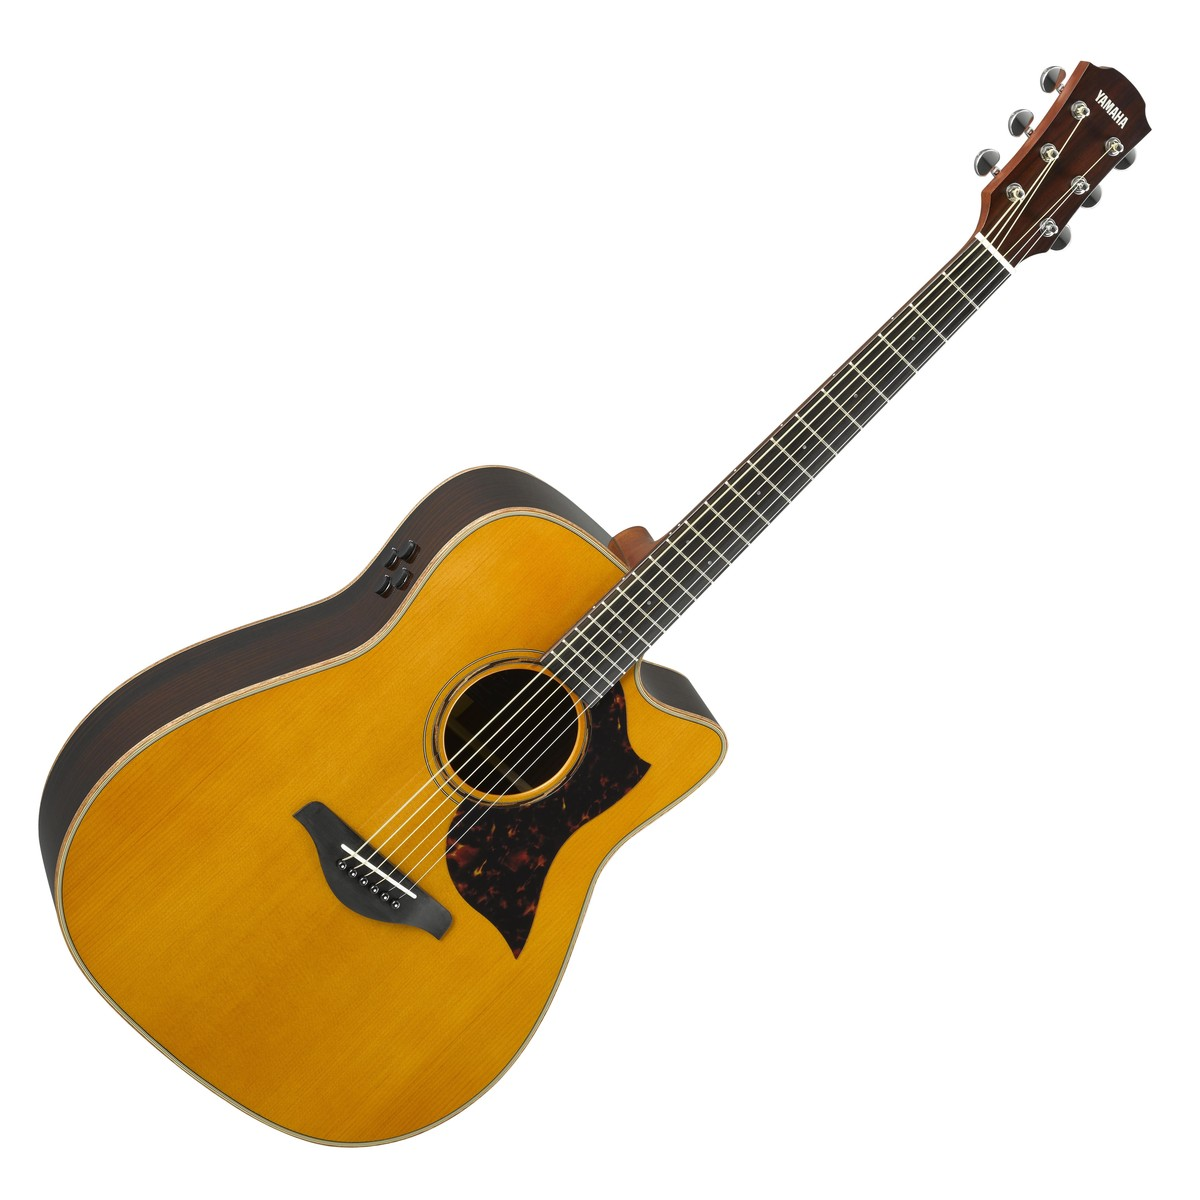 Yamaha a3r rosewood electro acoustic guitar vintage for Where are yamaha guitars made